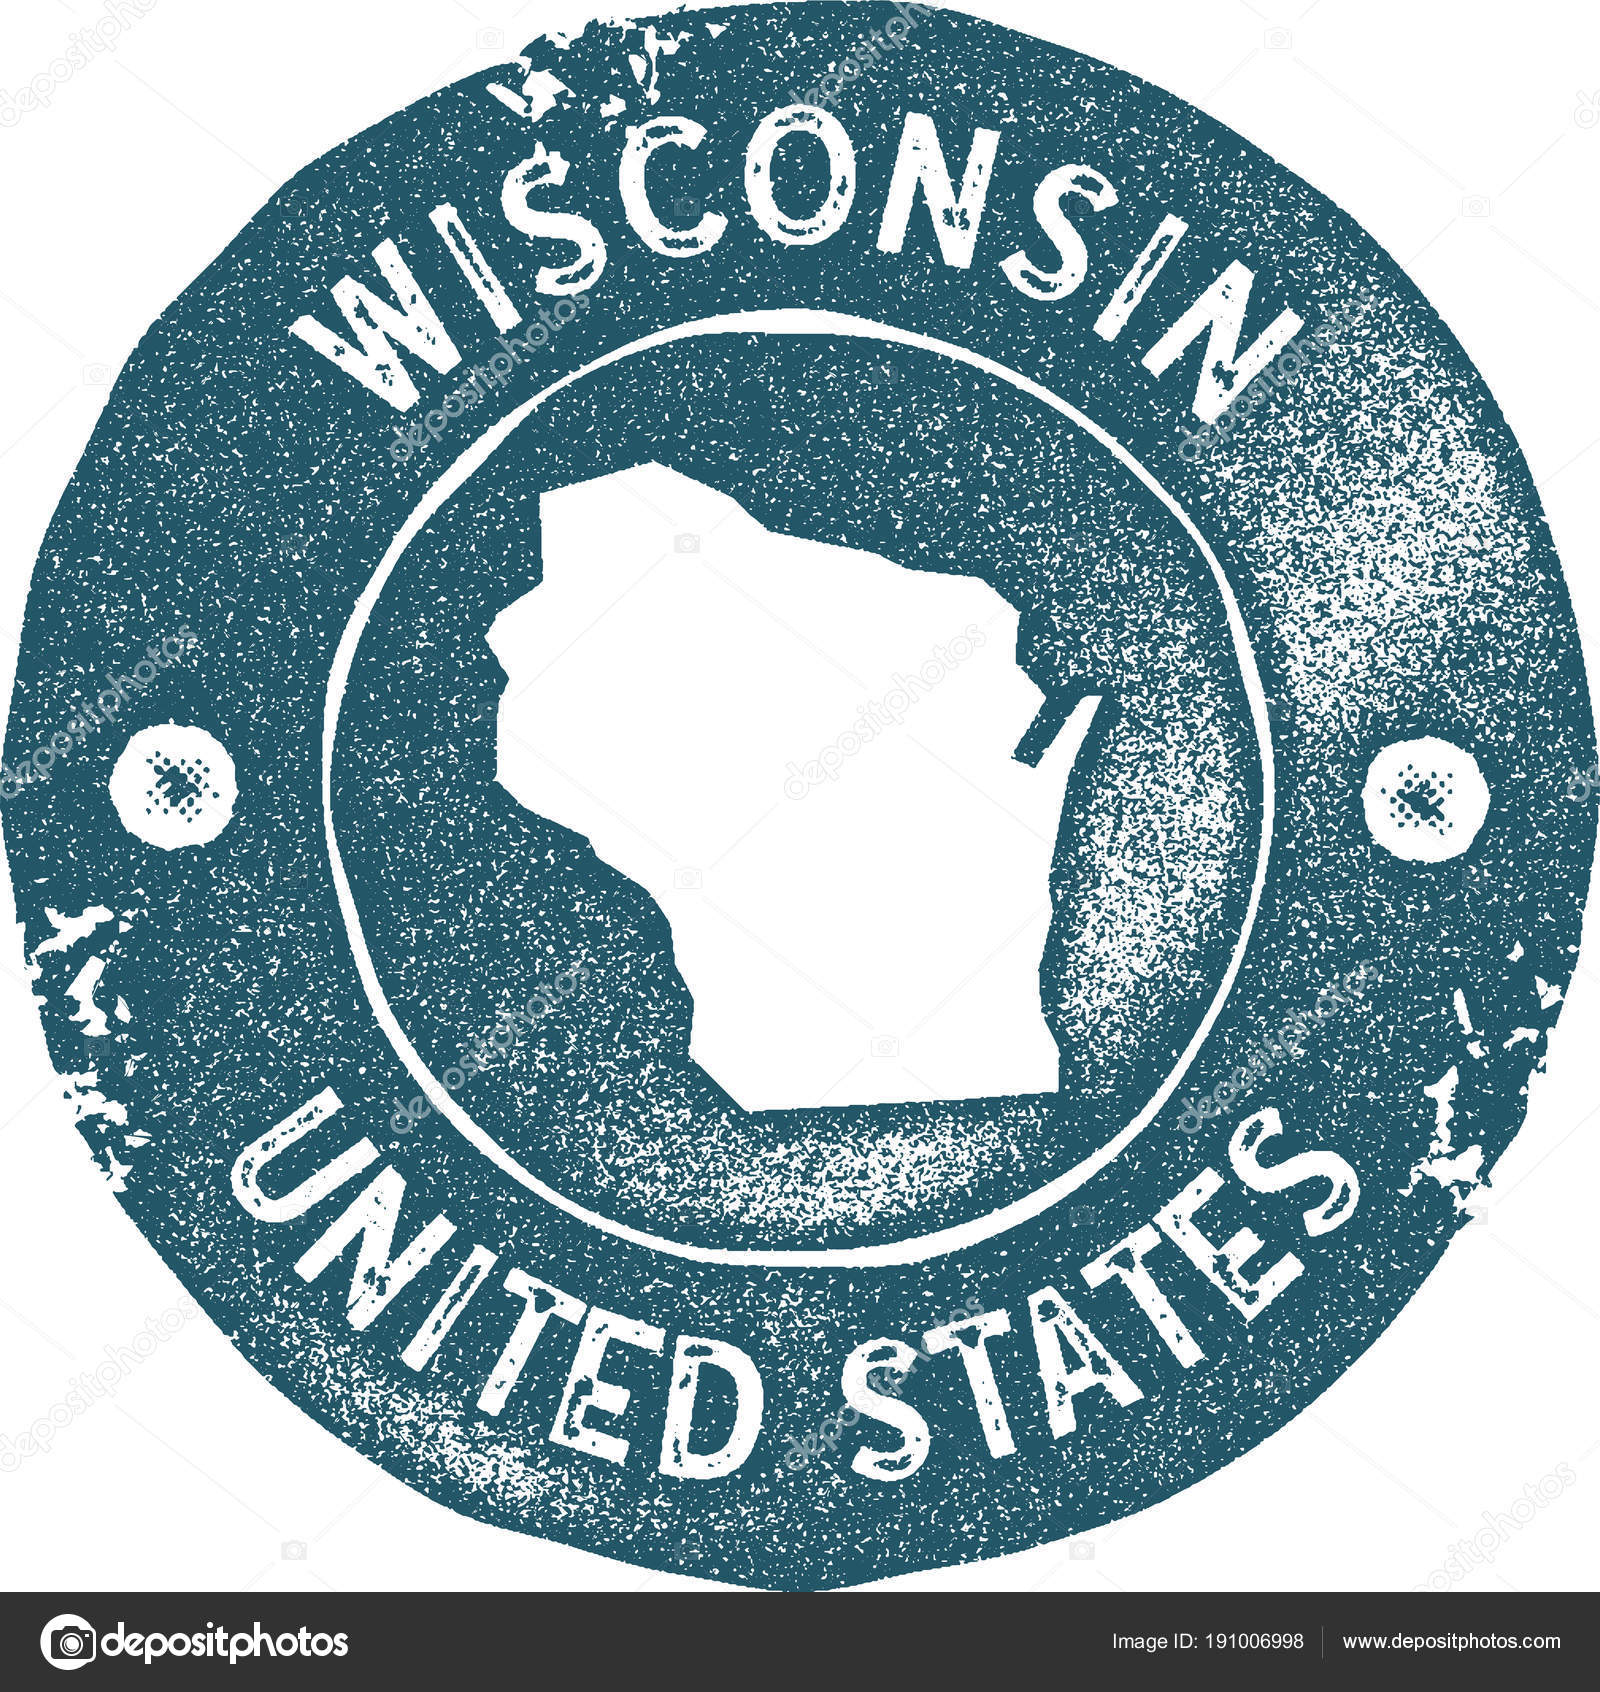 Wisconsin Map Vintage Stamp Retro Style Handmade Label Badge Or Element For Travel Souvenirs Blue